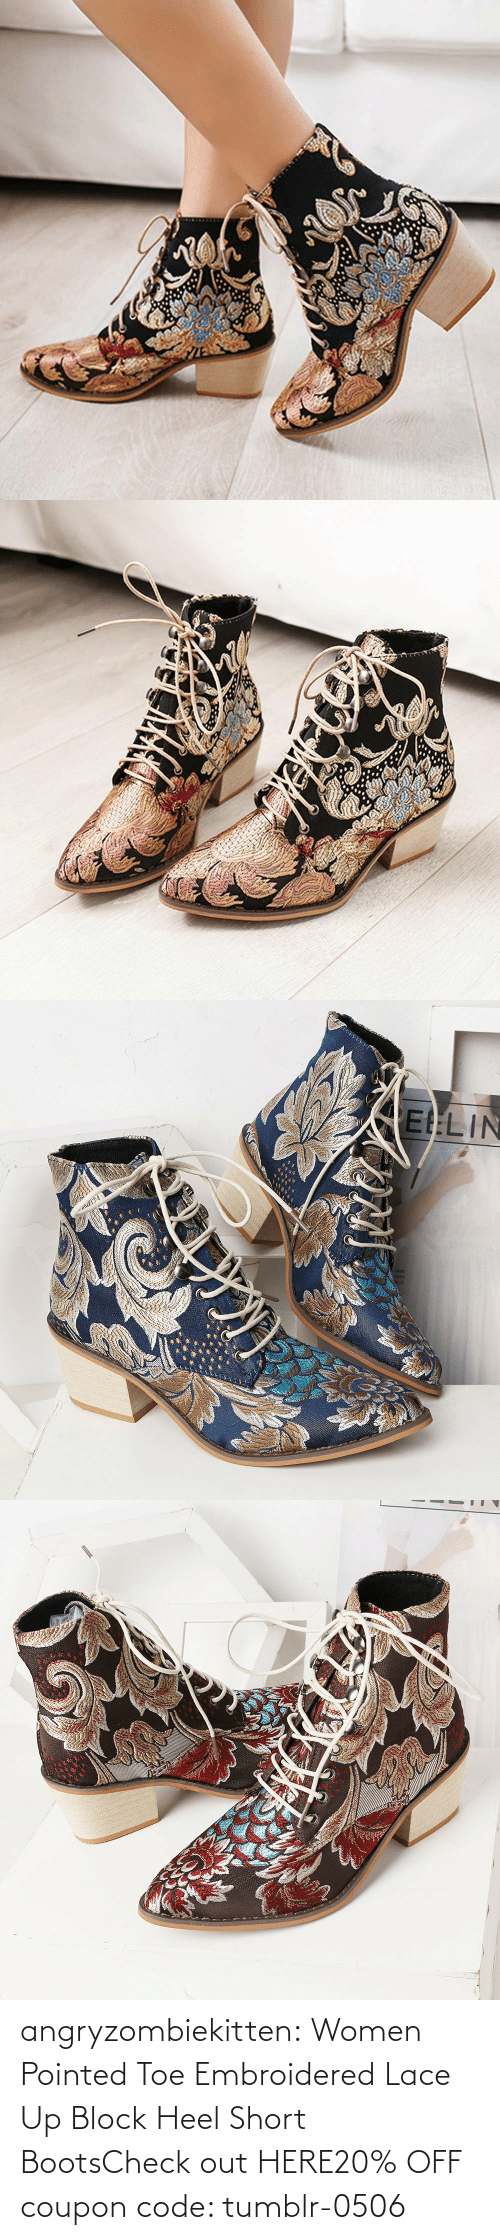 Off: angryzombiekitten:  Women Pointed Toe Embroidered Lace Up Block Heel Short BootsCheck out HERE20% OFF coupon code: tumblr-0506